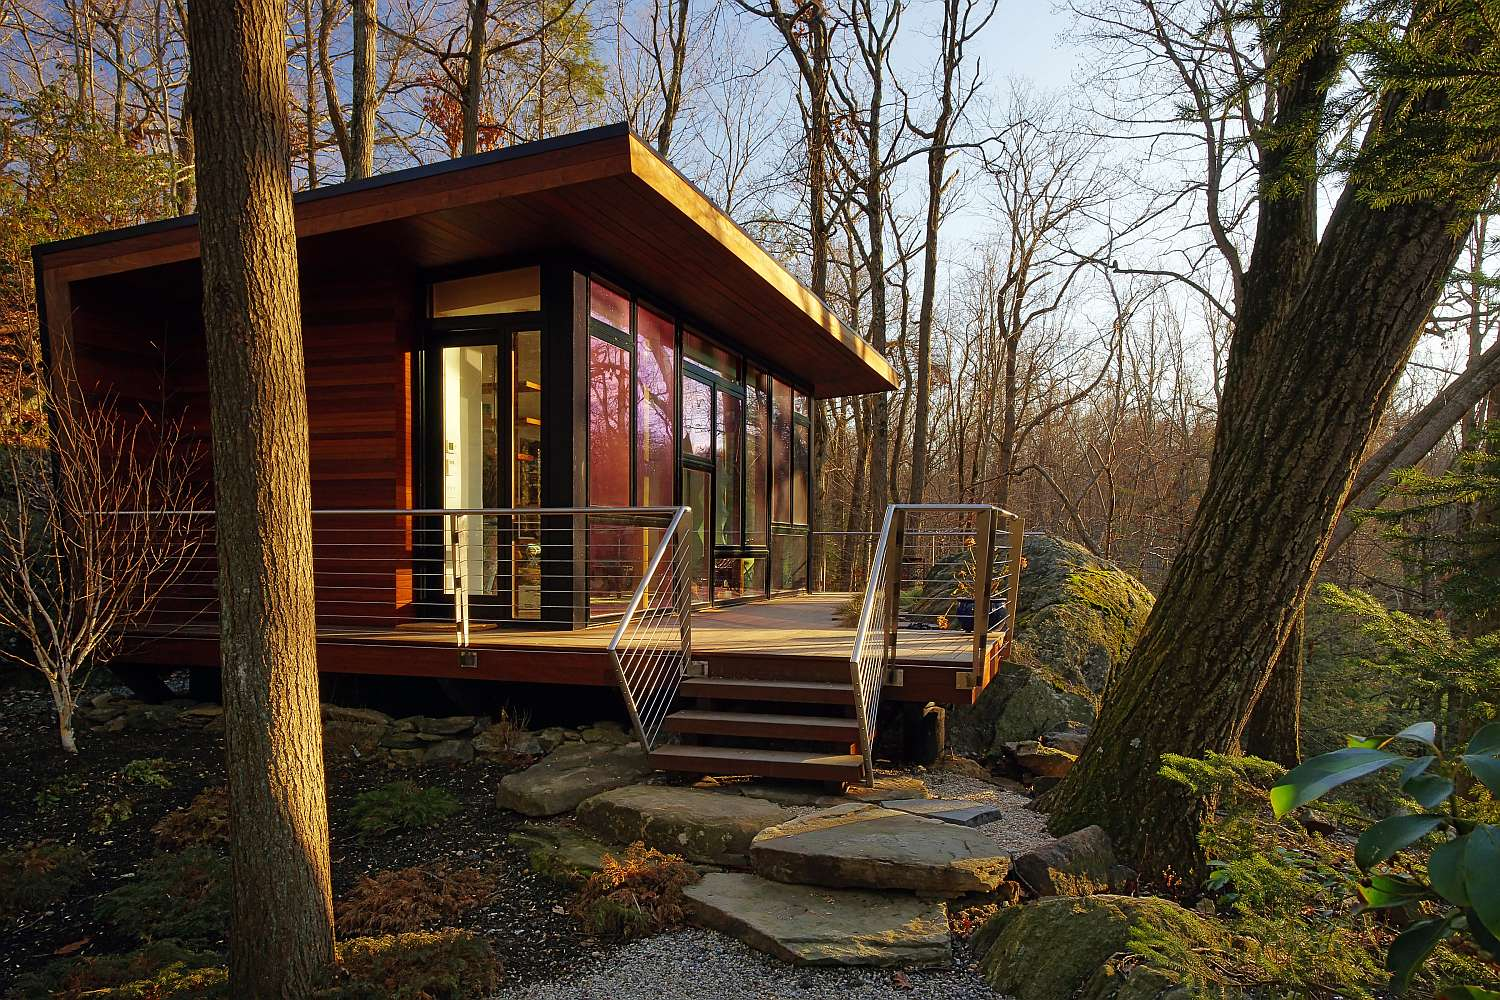 A modern studio retreat in the woods workshop apd small house bliss - Small wood homes ...